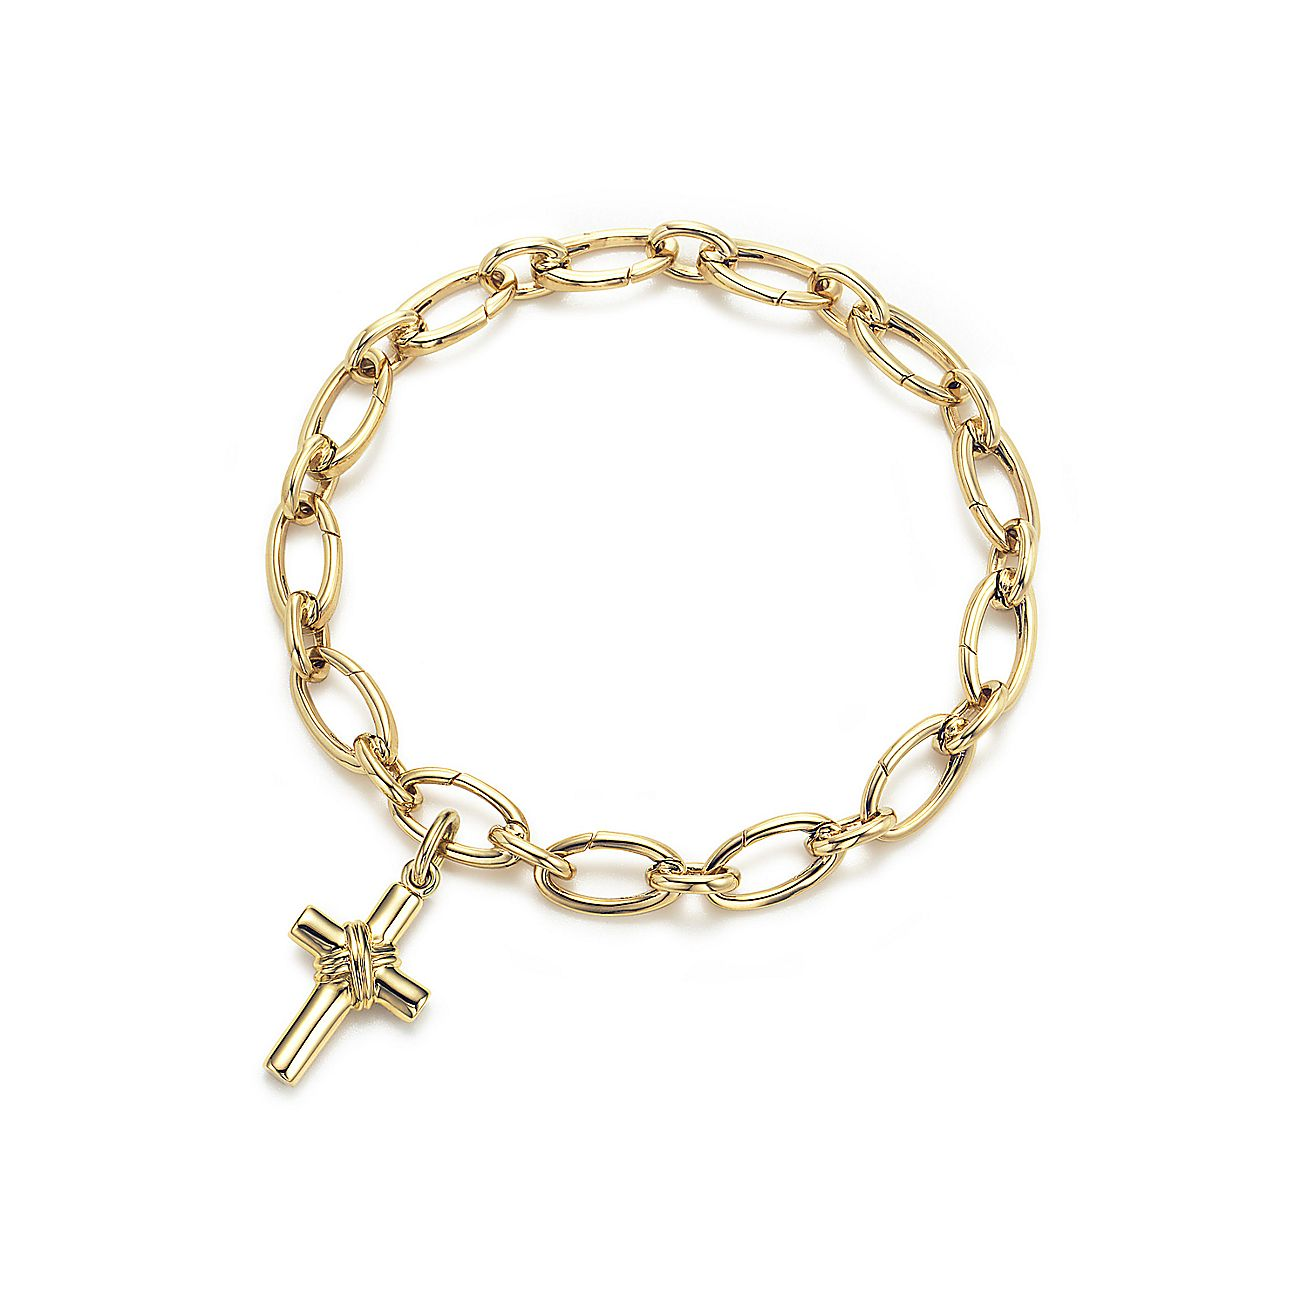 Cross Charm Bracelet: Cross Charm. 18k Gold. On A Bracelet.